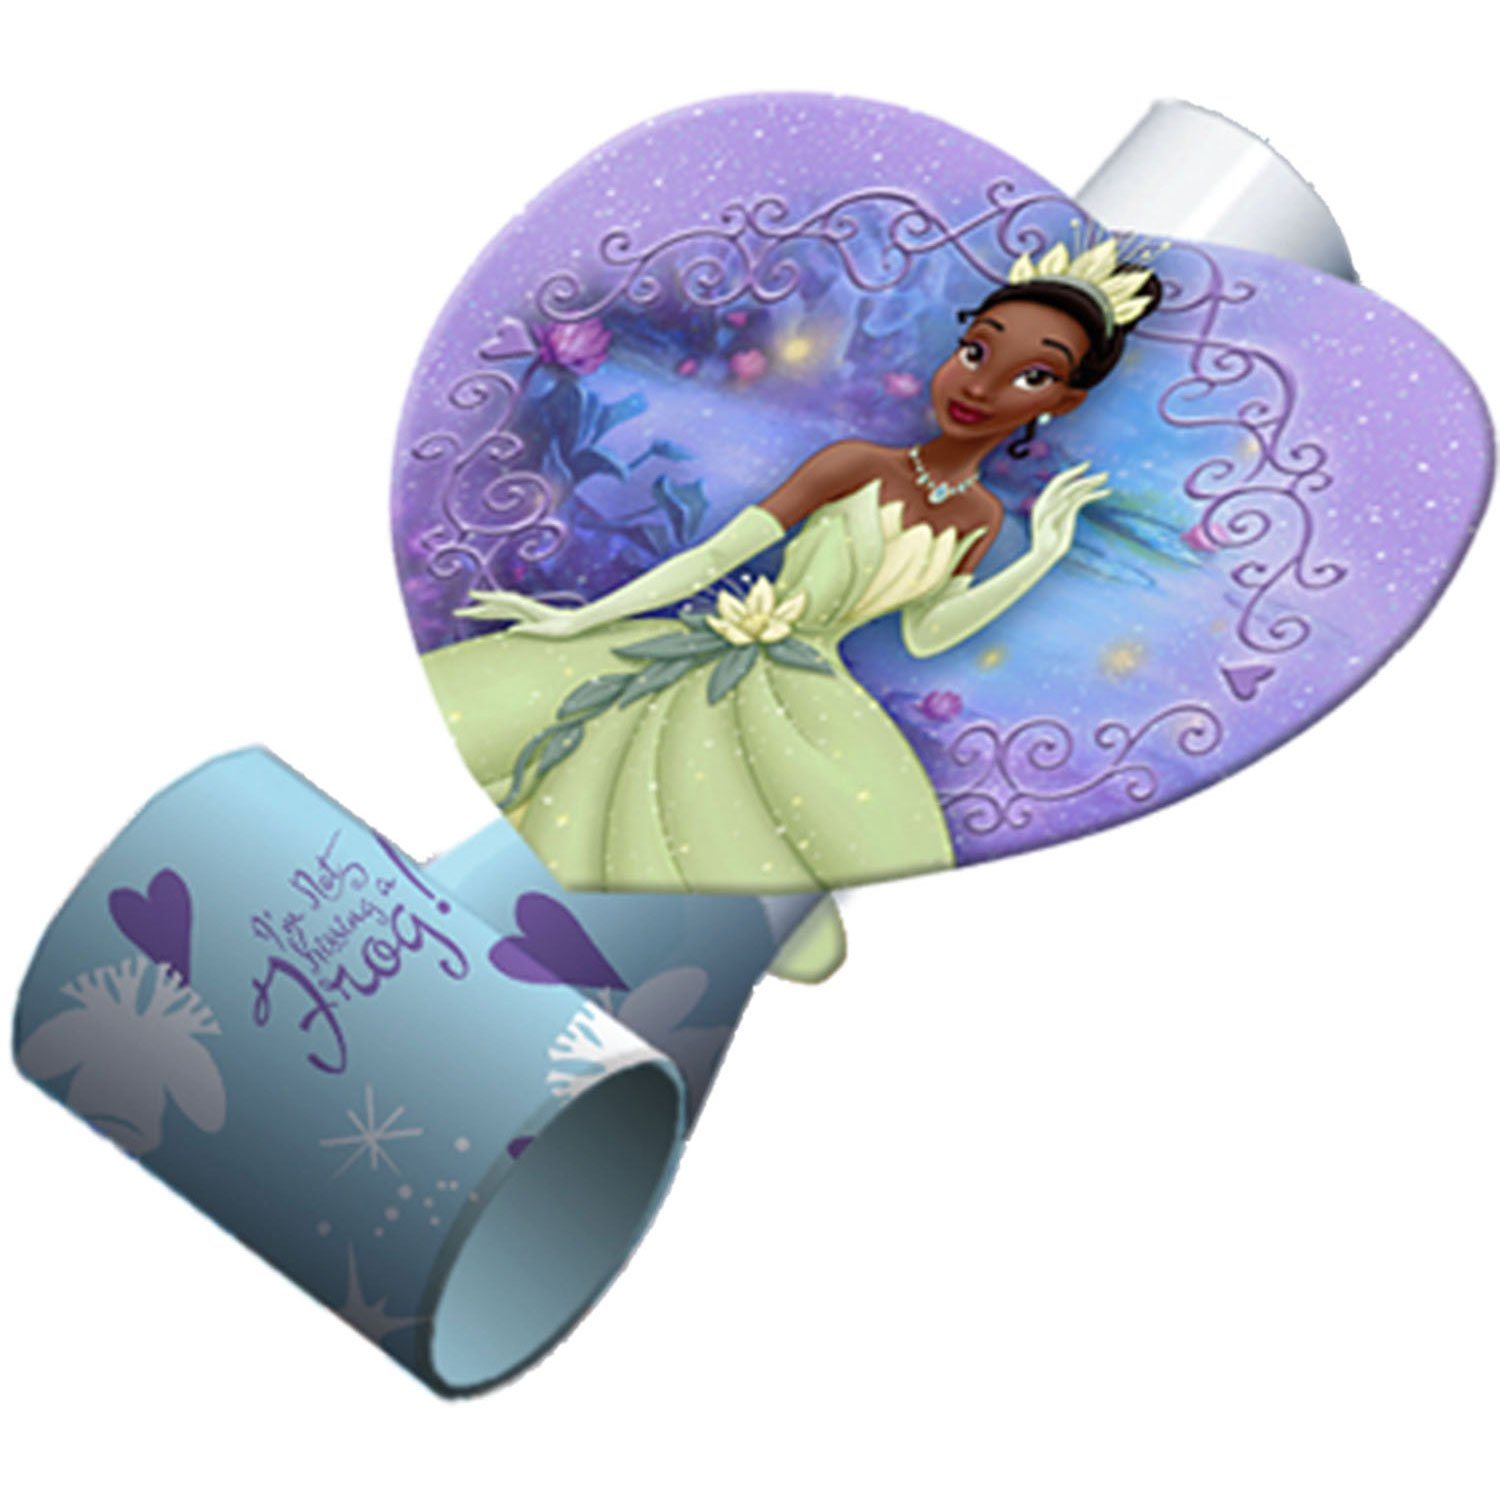 Hallmark The Princess And The Frog Blowouts 8 ct 0001BLW2467